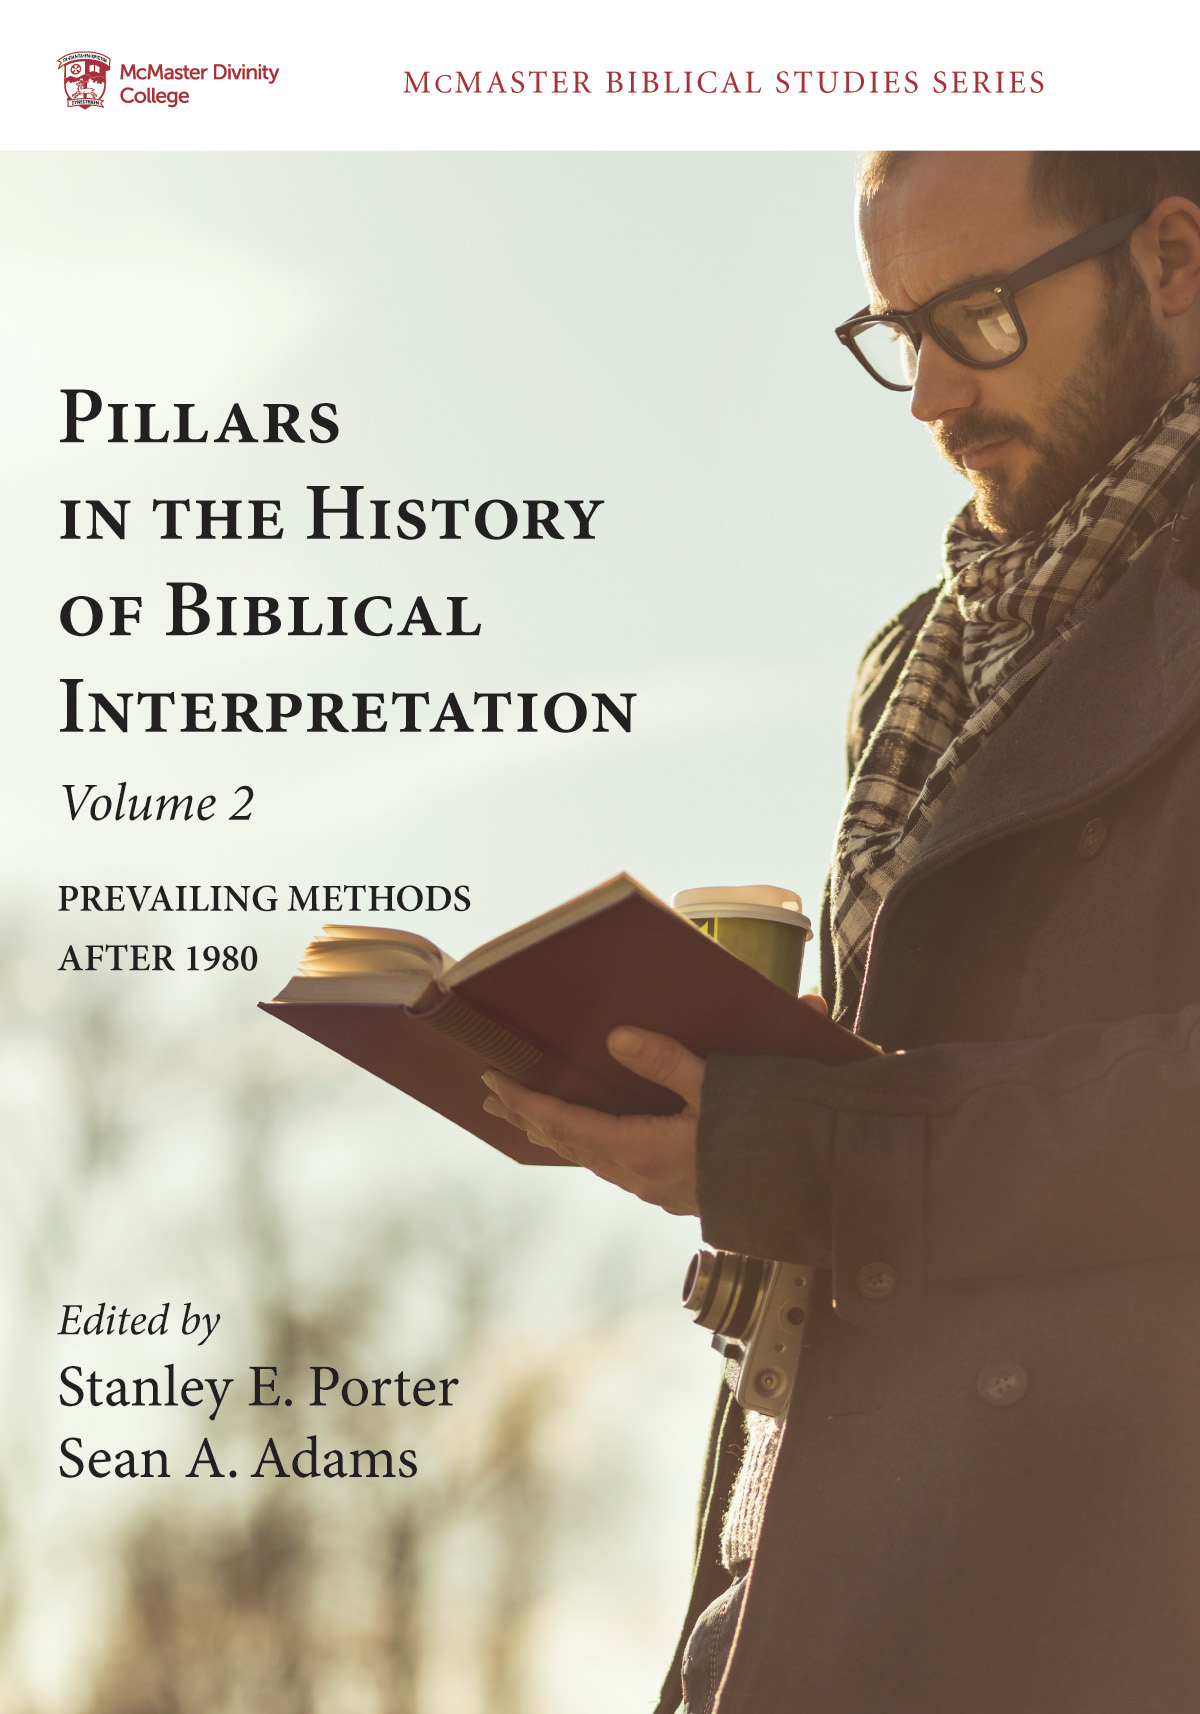 Pillars in the History of Biblical Interpretation: Volume 2: Prevailing Methods after 1980